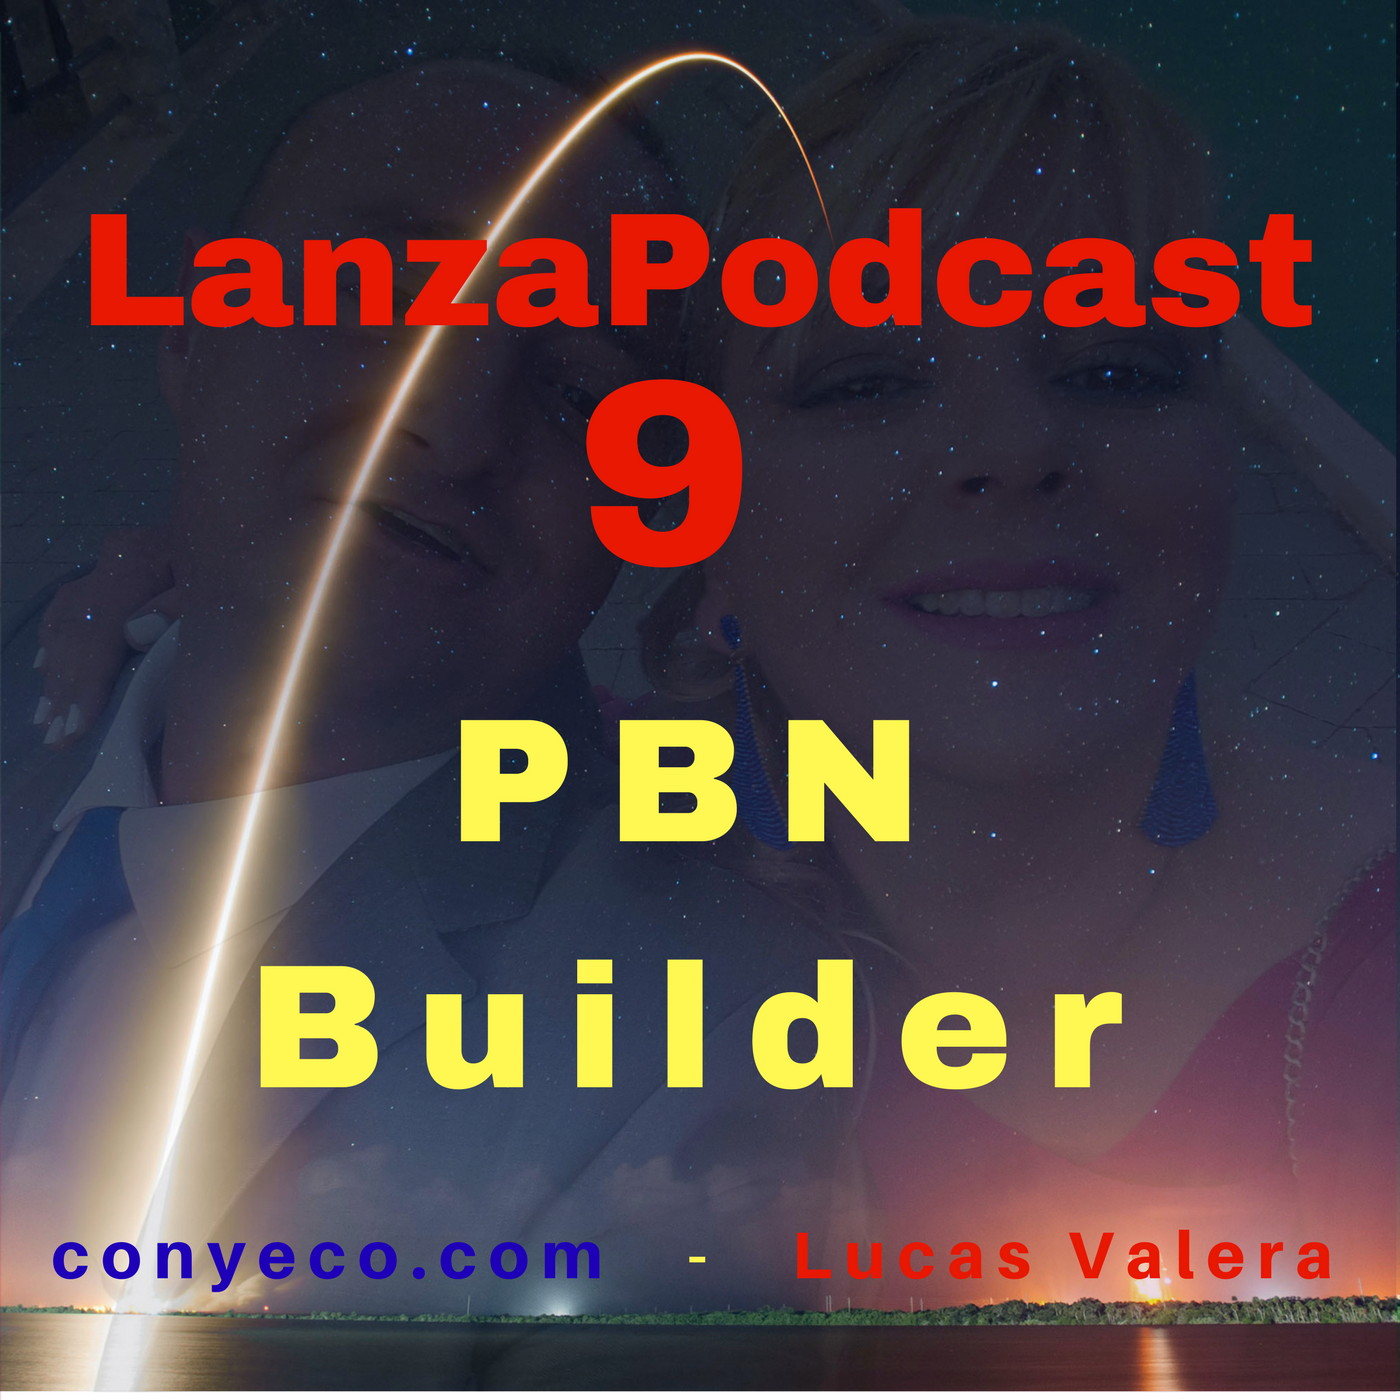 LanzaPodcast-9-PBN-Builder-conyeco.com-Lucas-Valera-Rank Your Videos and Sites On Page 1 By Leveraging The POWER of PBN'S Without All The Hassle of Building One